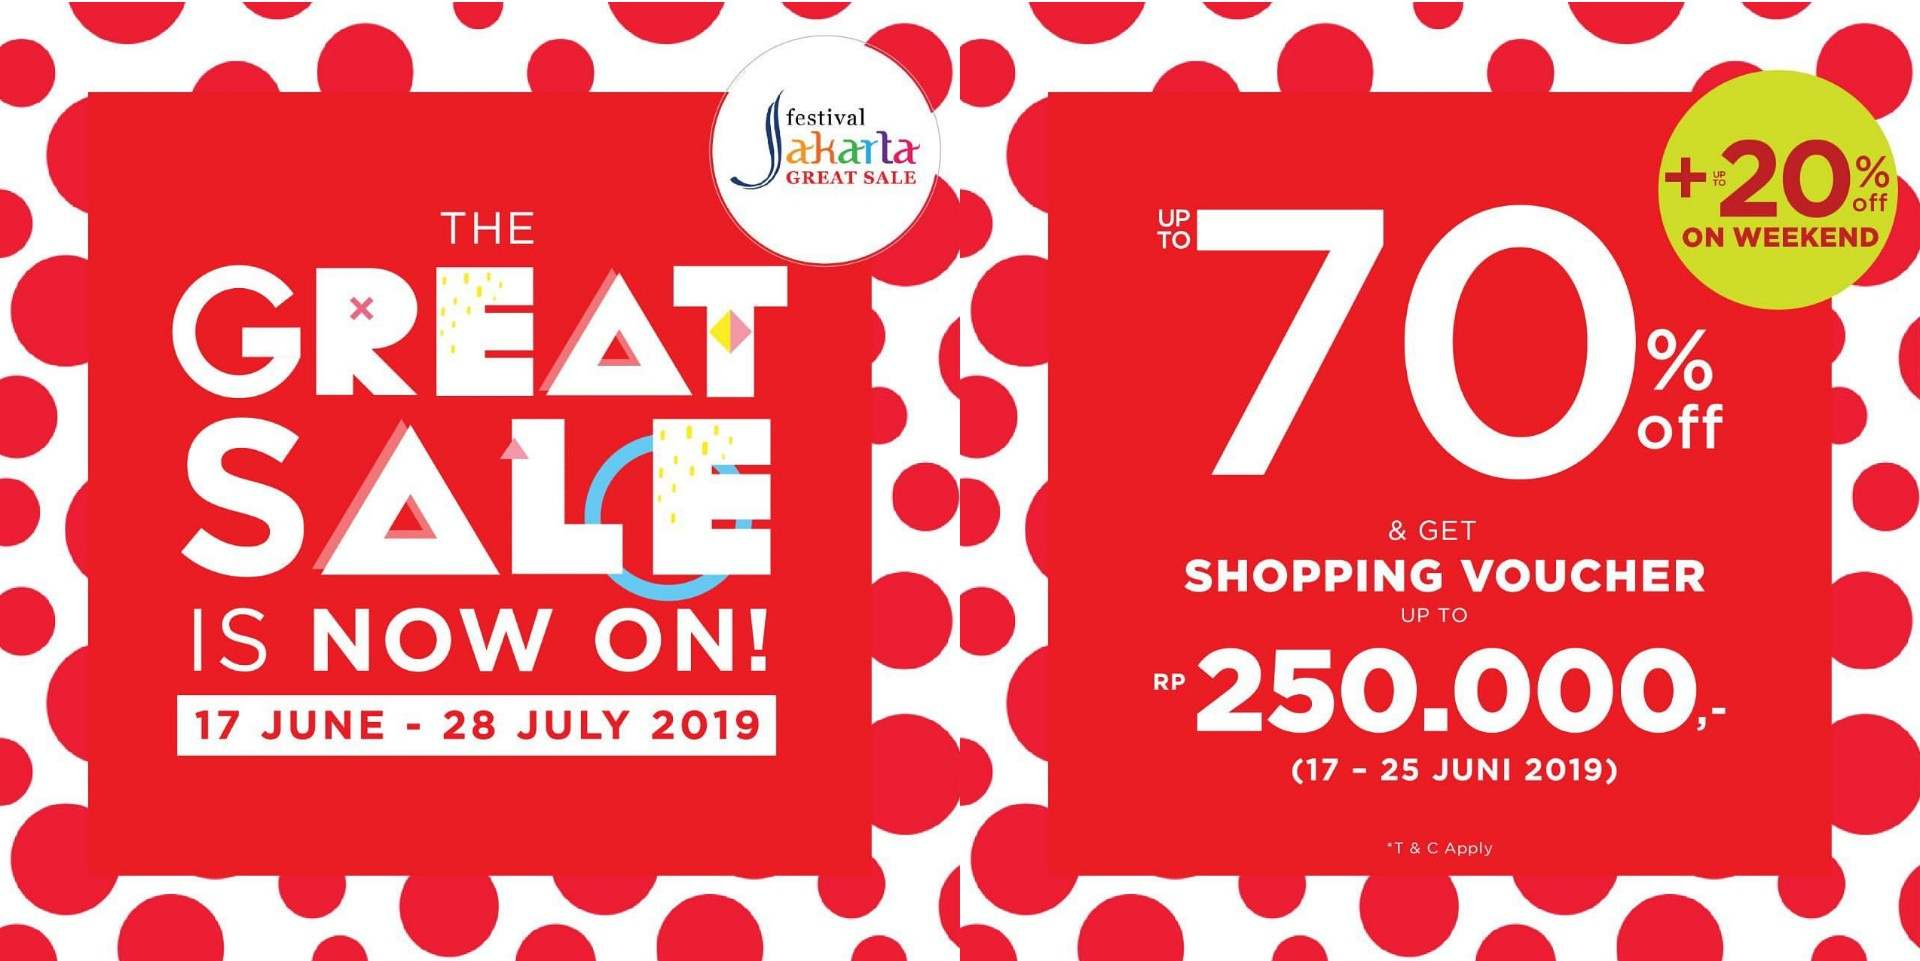 SOGO GREAT SALE! Enjoy up to 70% OFF and shopping voucher up to Rp.250,000